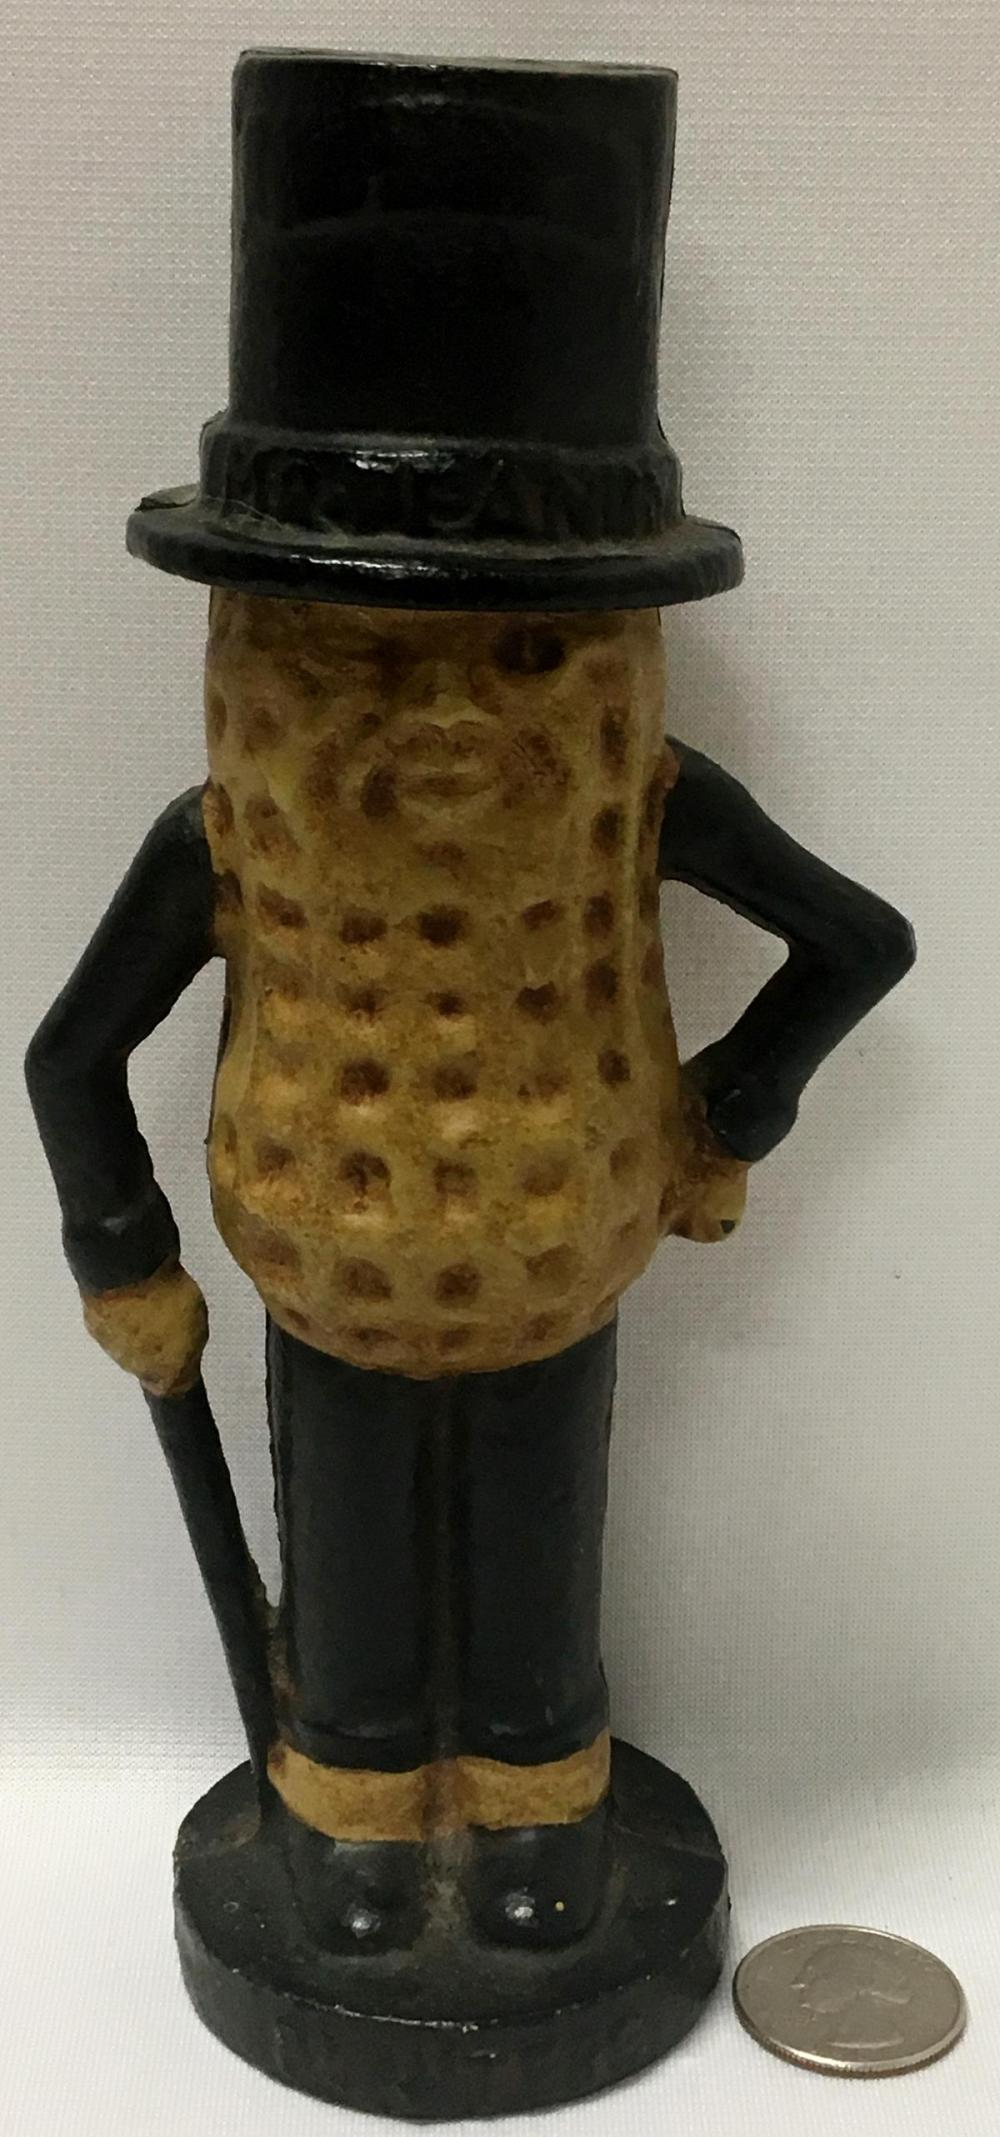 "Vintage Planters Mr. Peanut Cast Iron Still Bank 7.5"" tall"